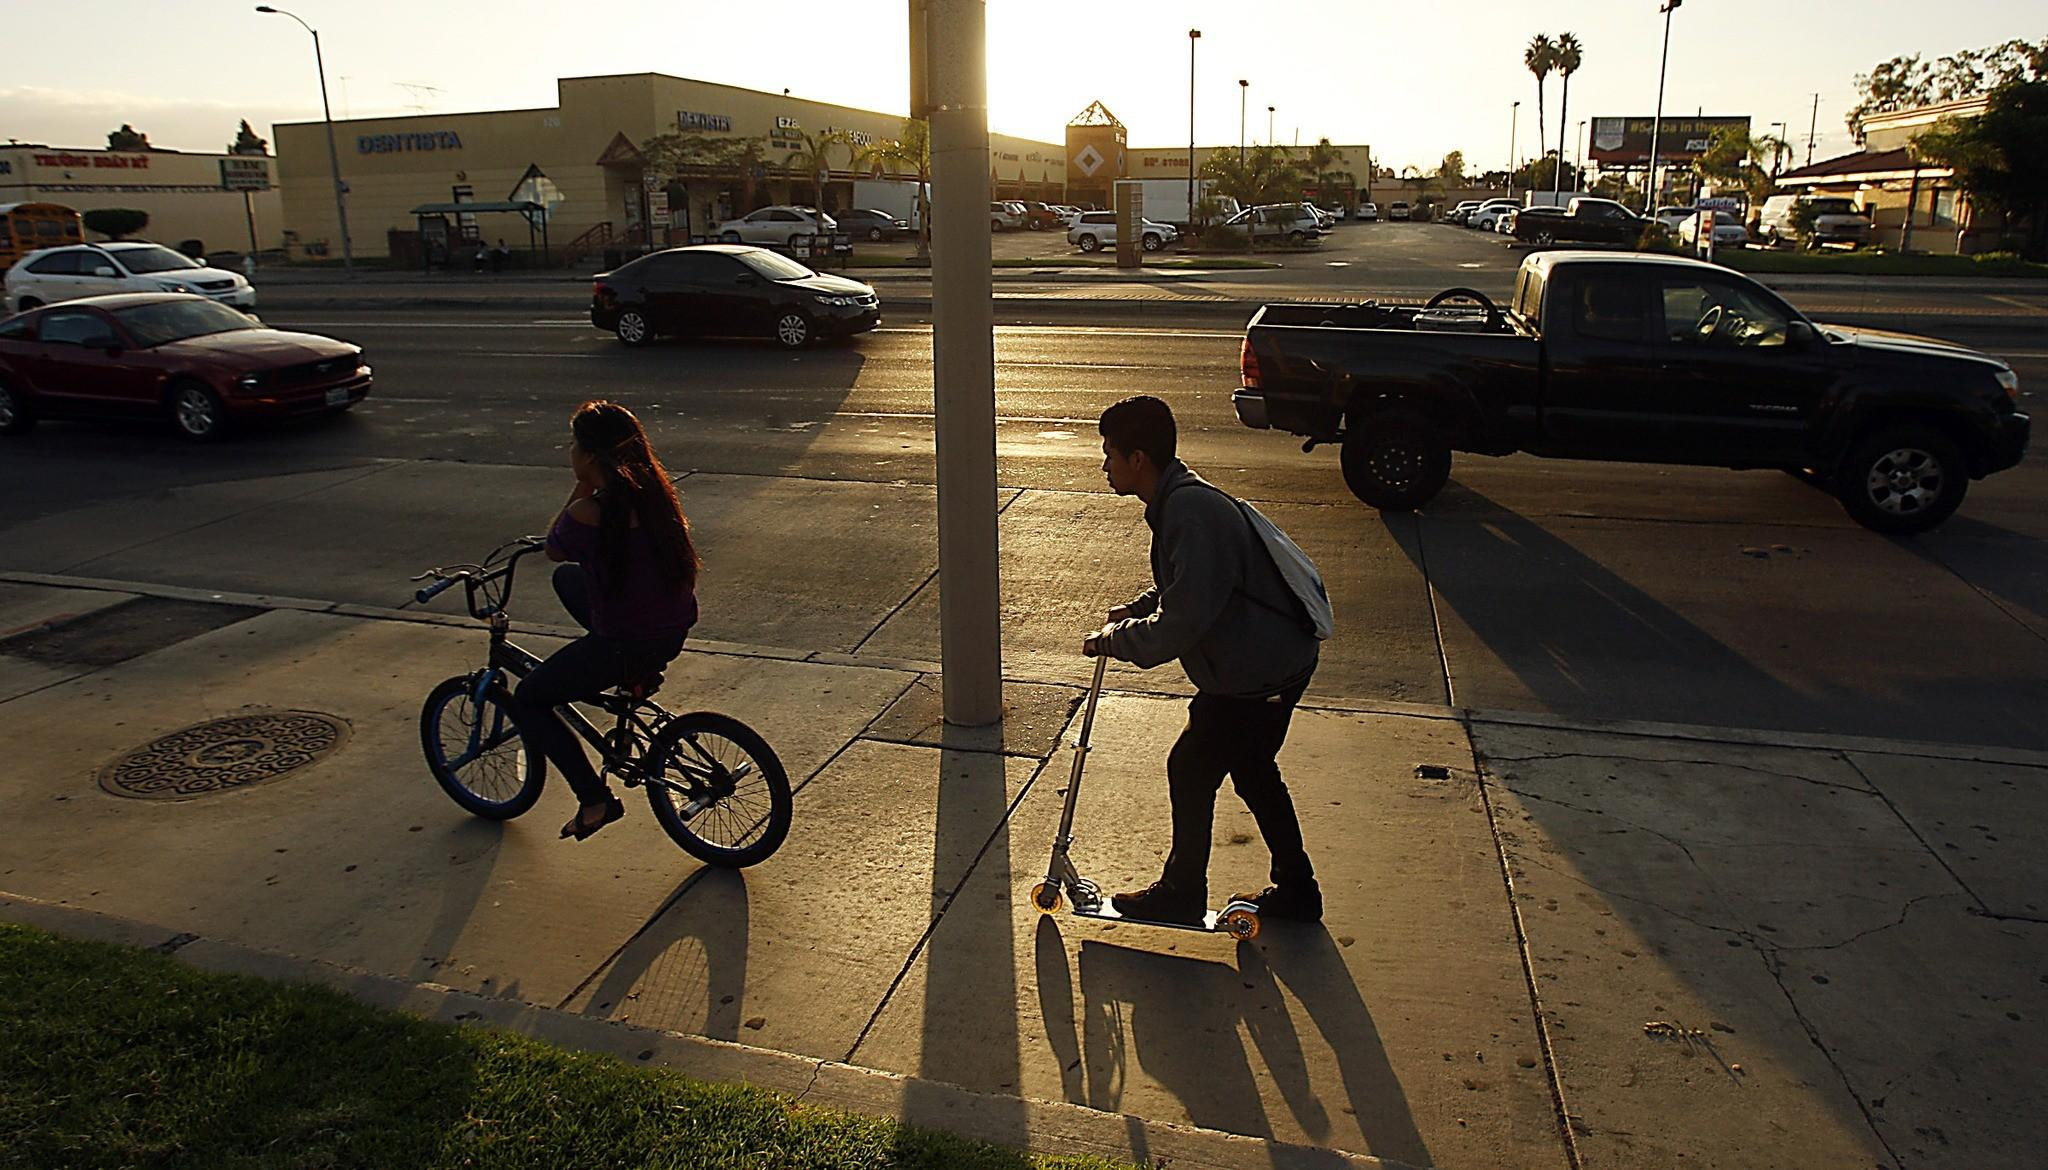 Kids scoot down Harbor Boulevard in Santa Ana as late afternoon traffic rolls along a landscape of strip malls. Despite real estate development, the boulevard has seen little change over the years. There is no equivalent of the light-rail expansion that is